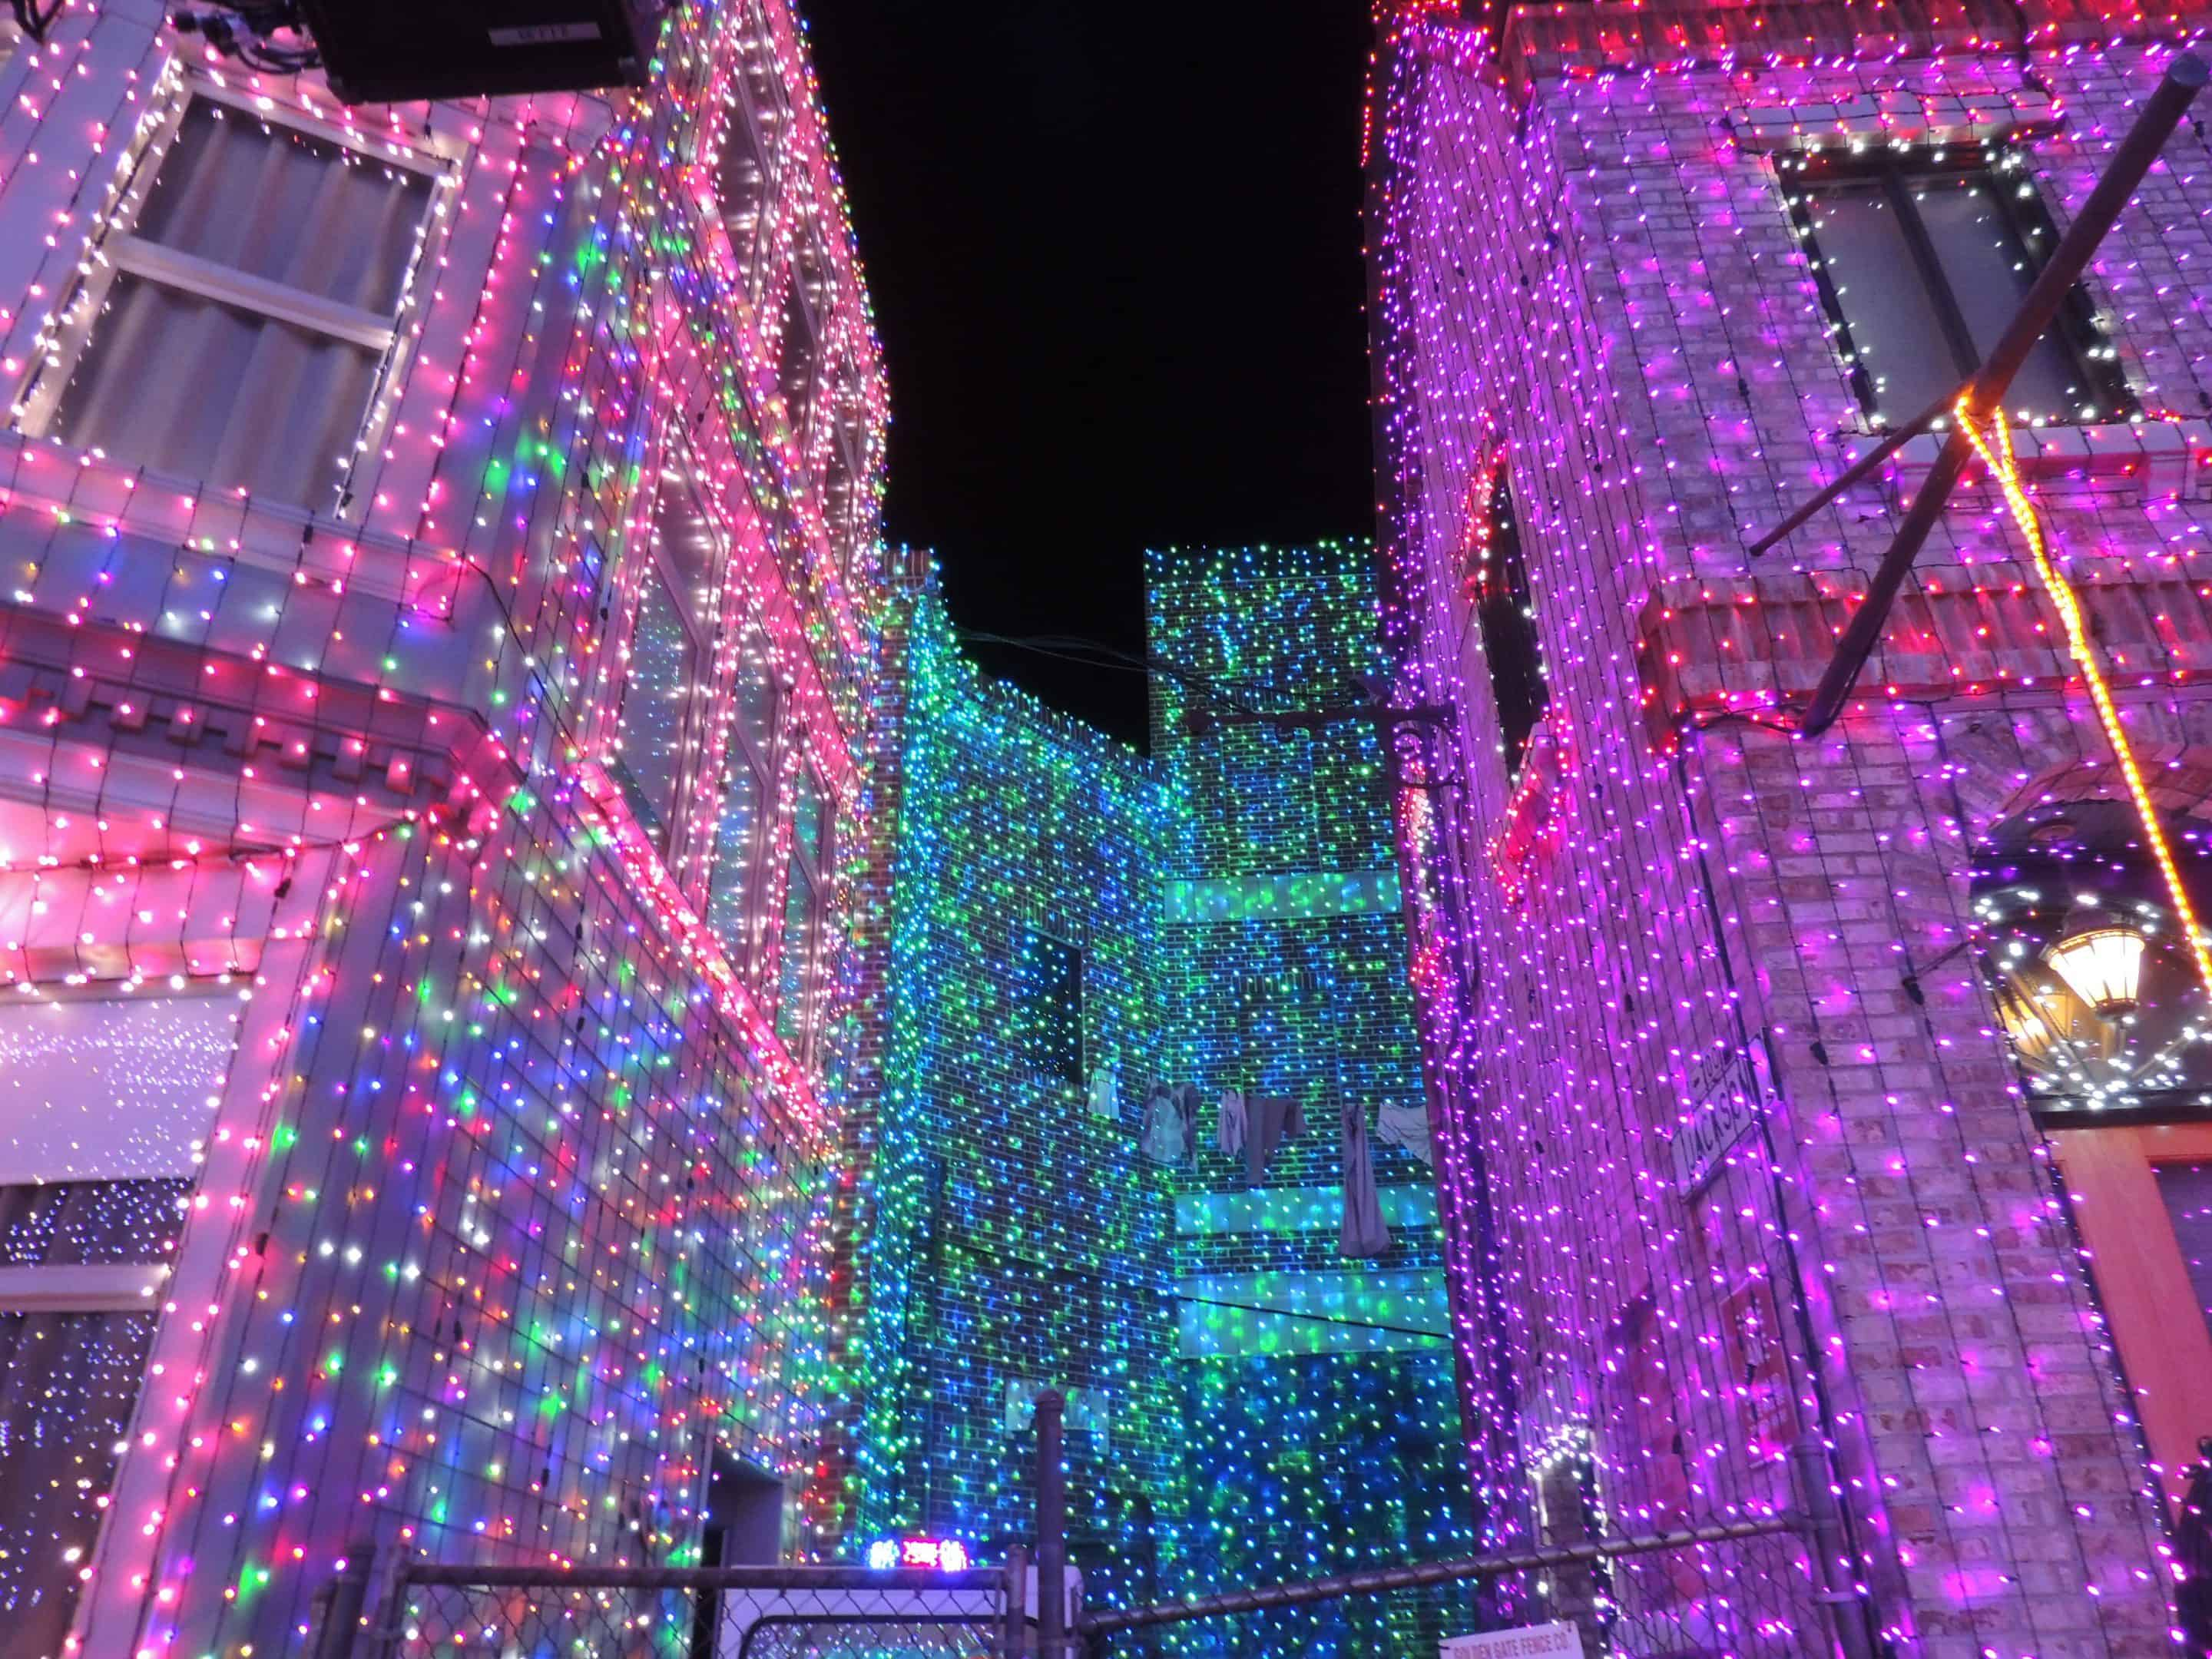 PHOTO TOUR of the Osborne Family Spectacle of Dancing Lights!